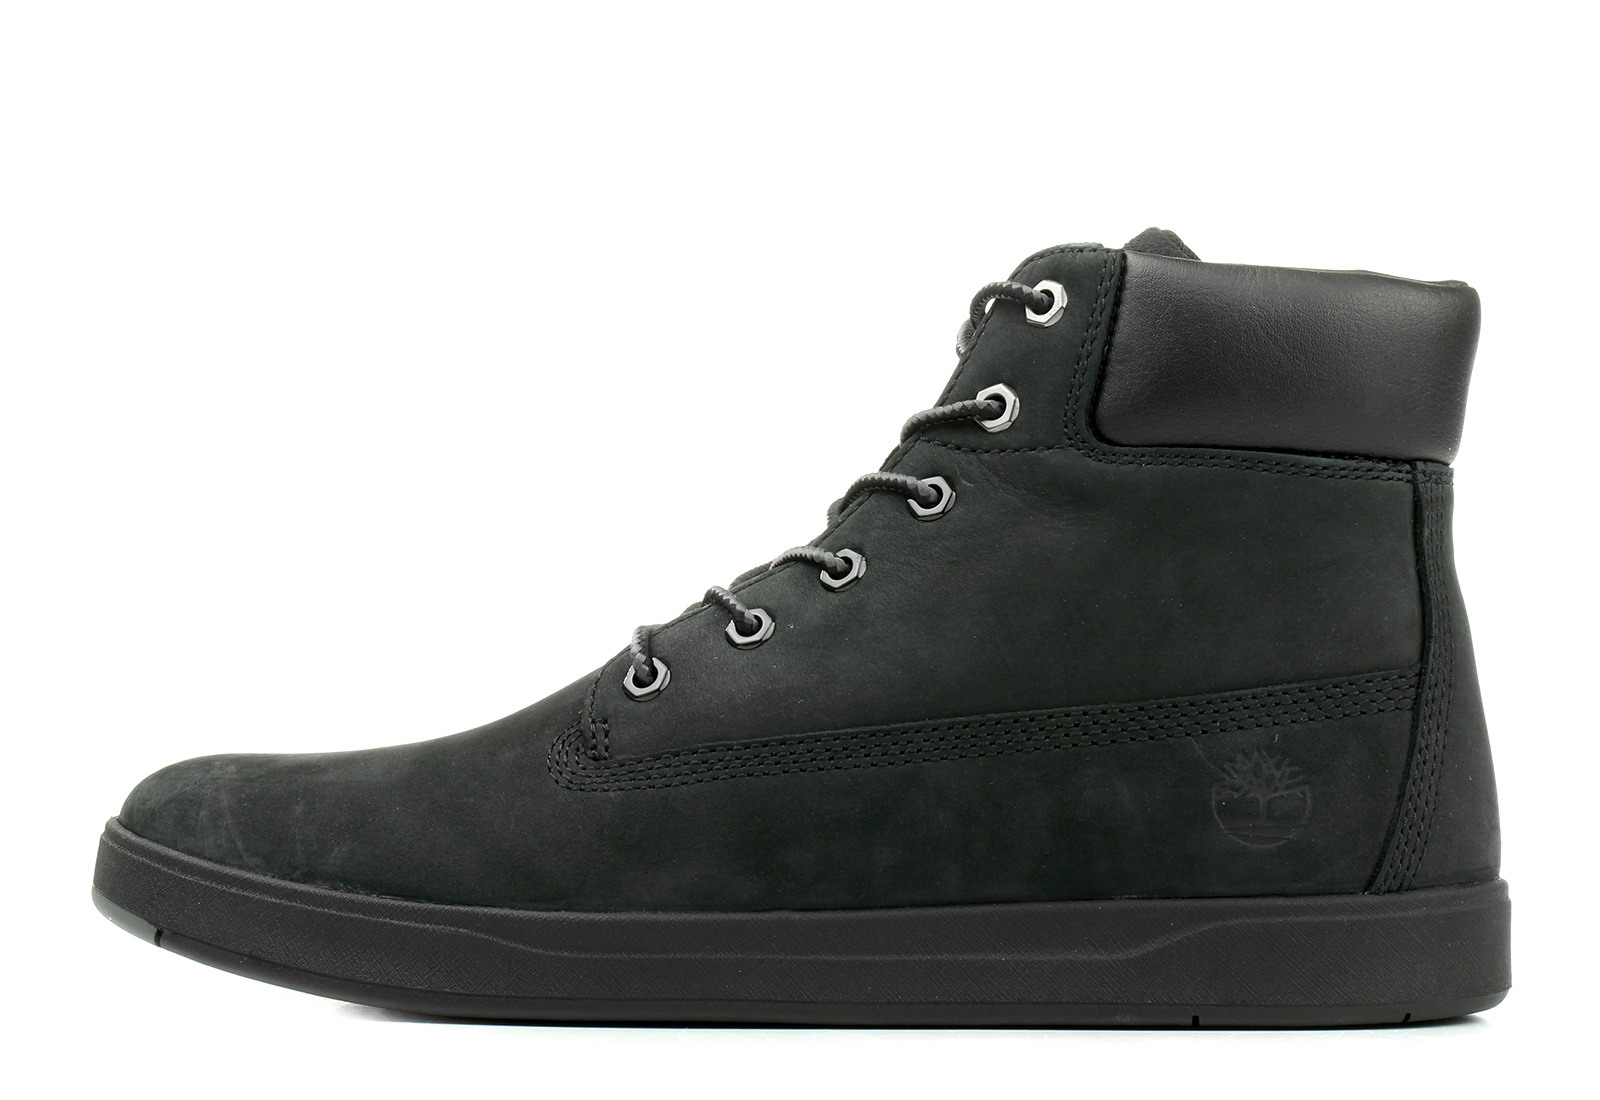 Timberland Topánky - Davis Square 6 Inch Boot - A1UWS-blk - Tenisky ... 414bde65b8f